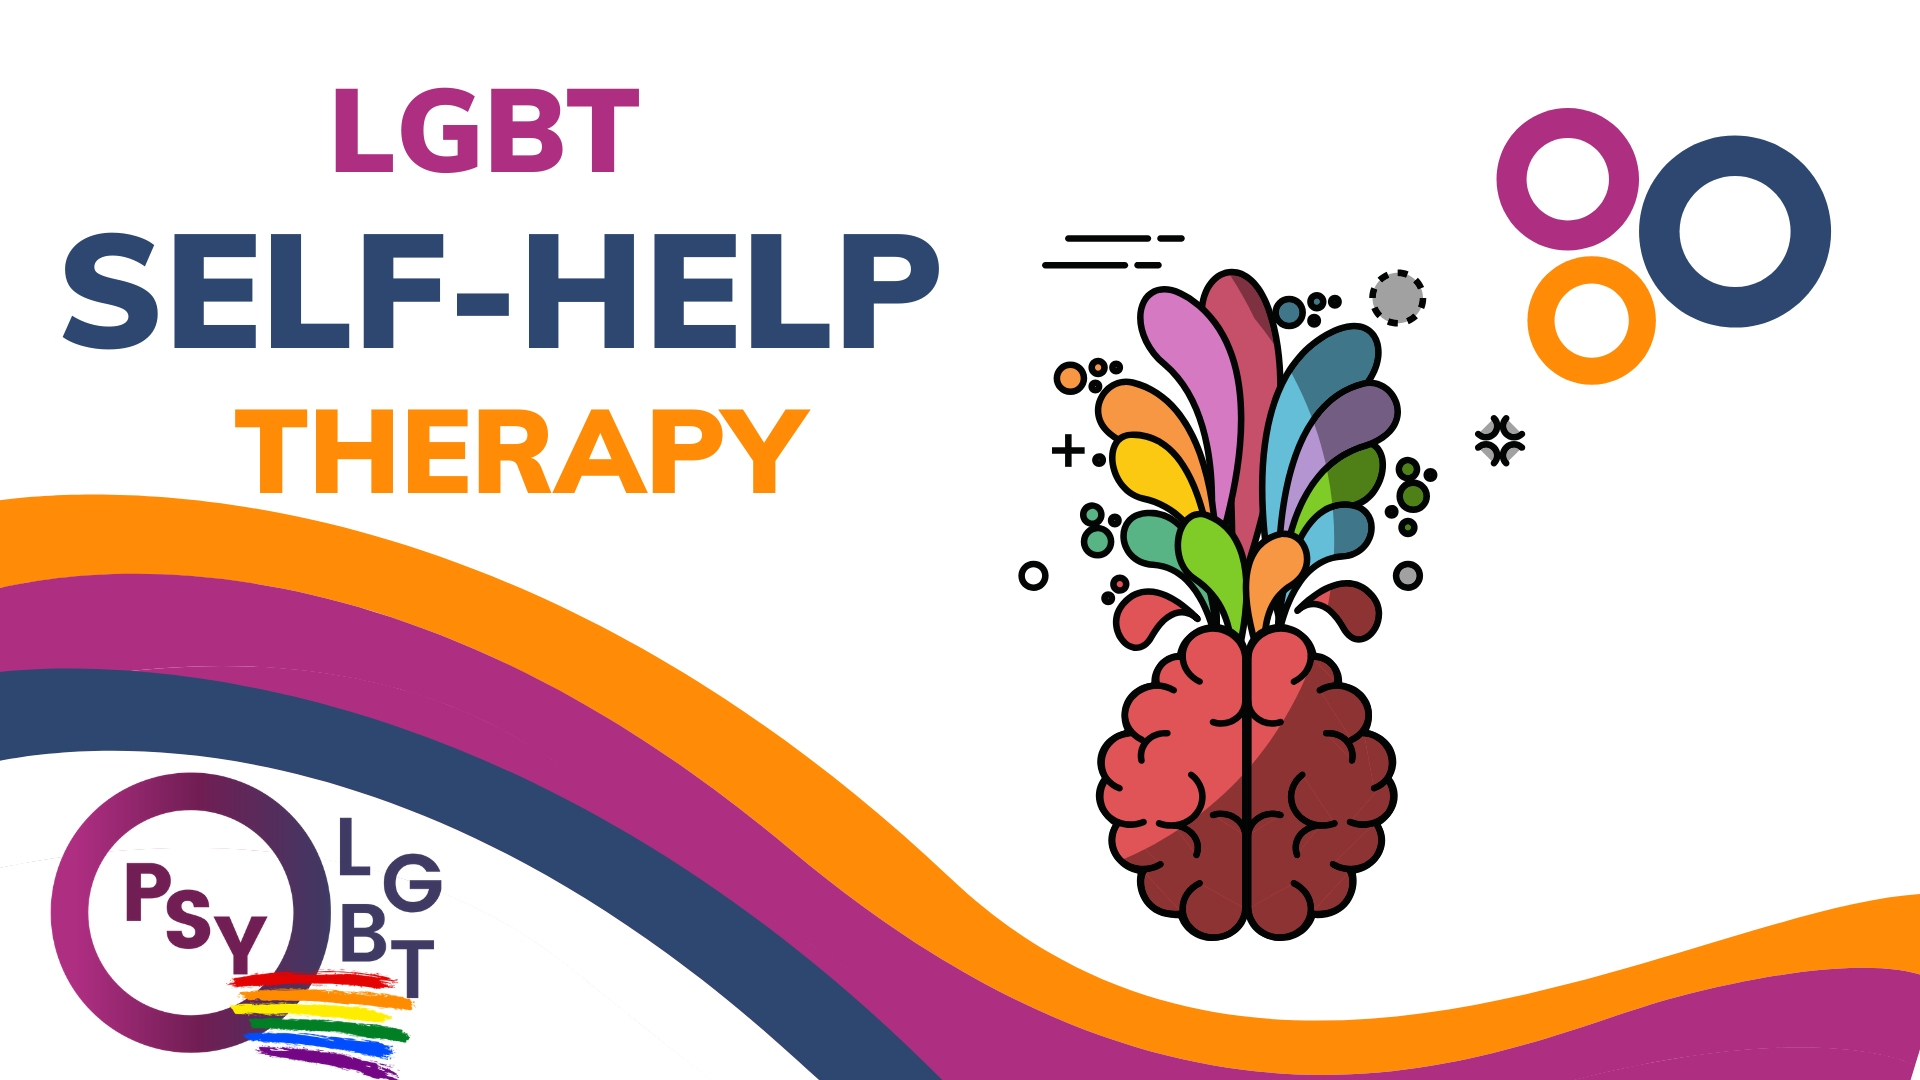 lgbt self-help therapy